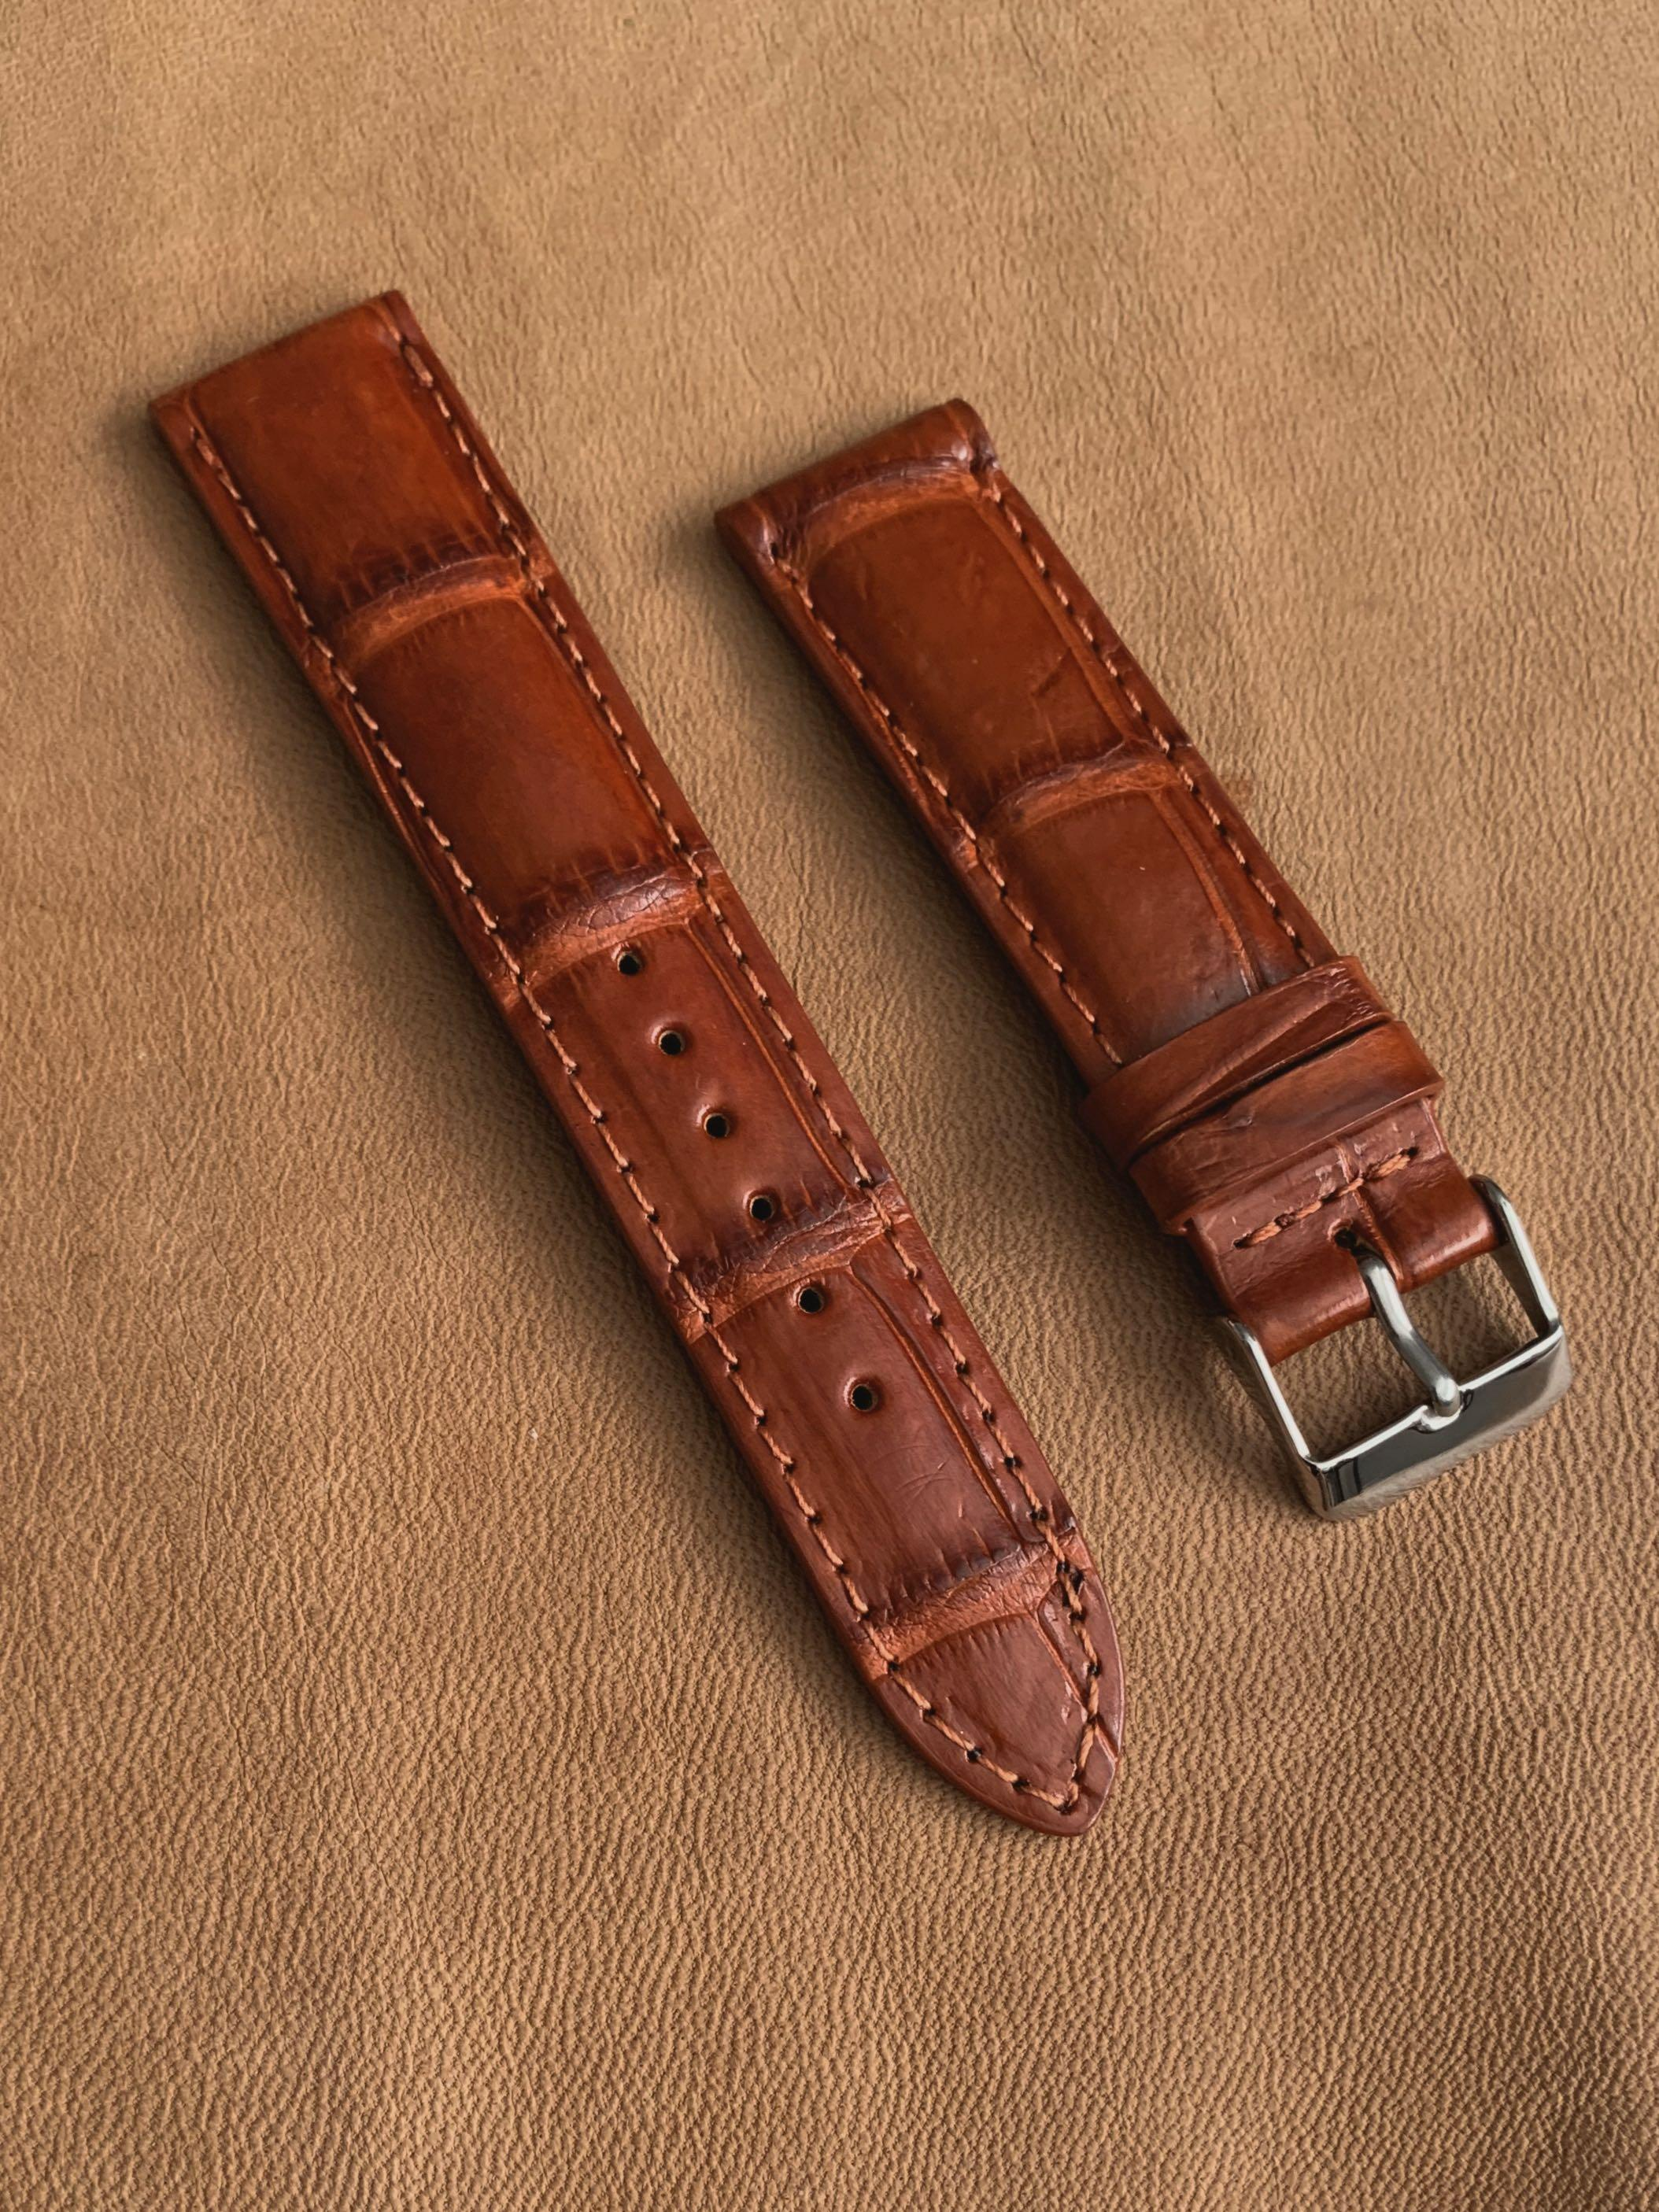 [SOLD] 20mm/18mm Antiqued Mahogany Brown Scales Crocodile Alligator Watch Strap (one of a kind, once sold, no more 🙏🏻😊) 20mm@lug/18mm@buckle  20mm/18mm     Standard length: L-120mm,S-75mm